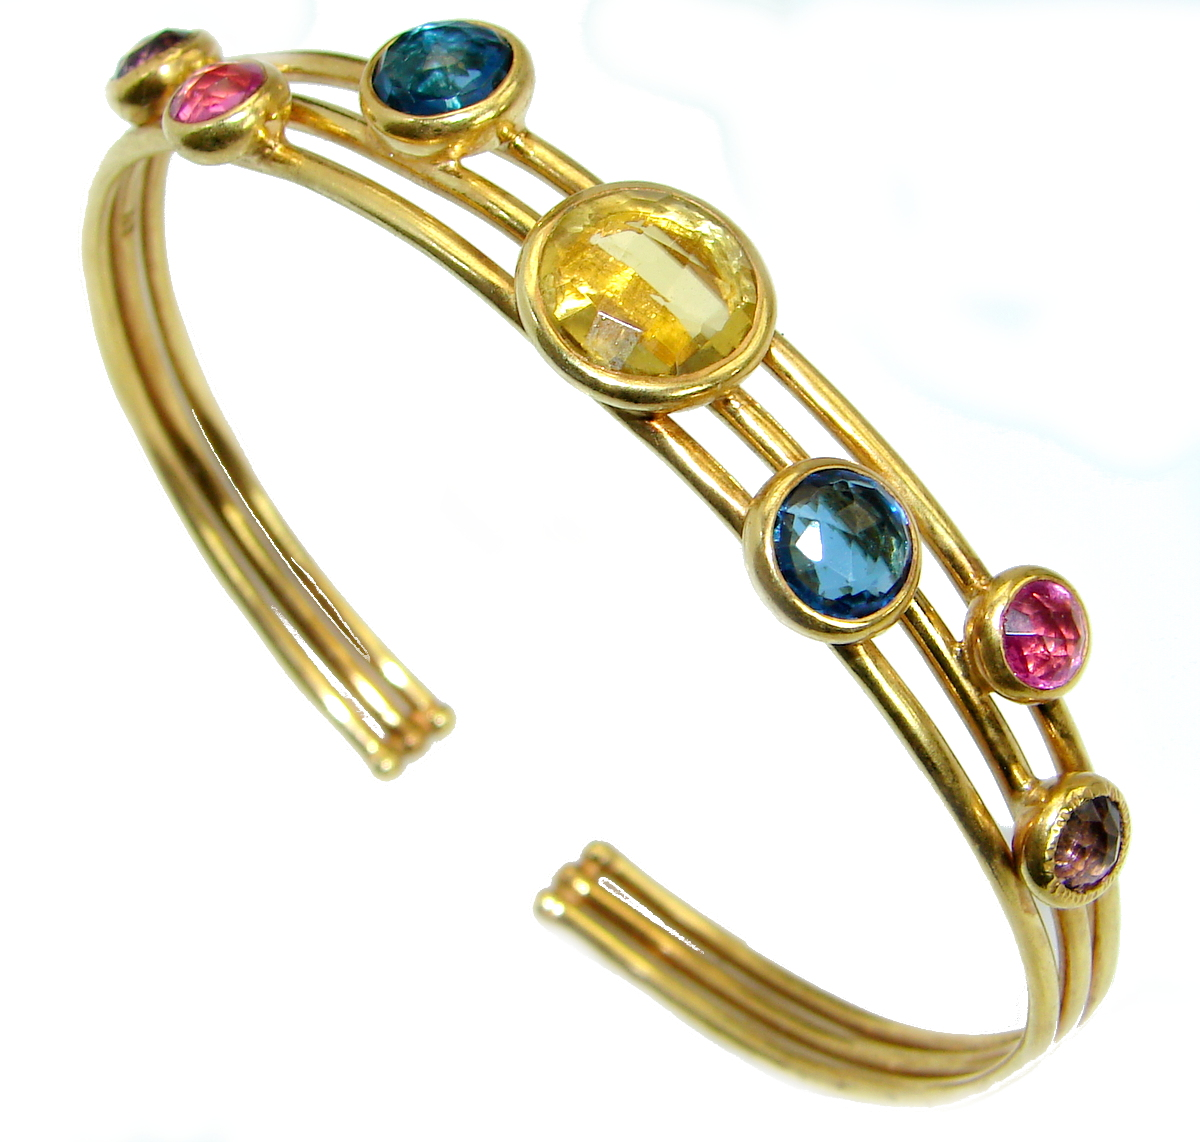 Luxury Paradise simulated Gemstones Gold over .925 Sterling Silver Bracelet